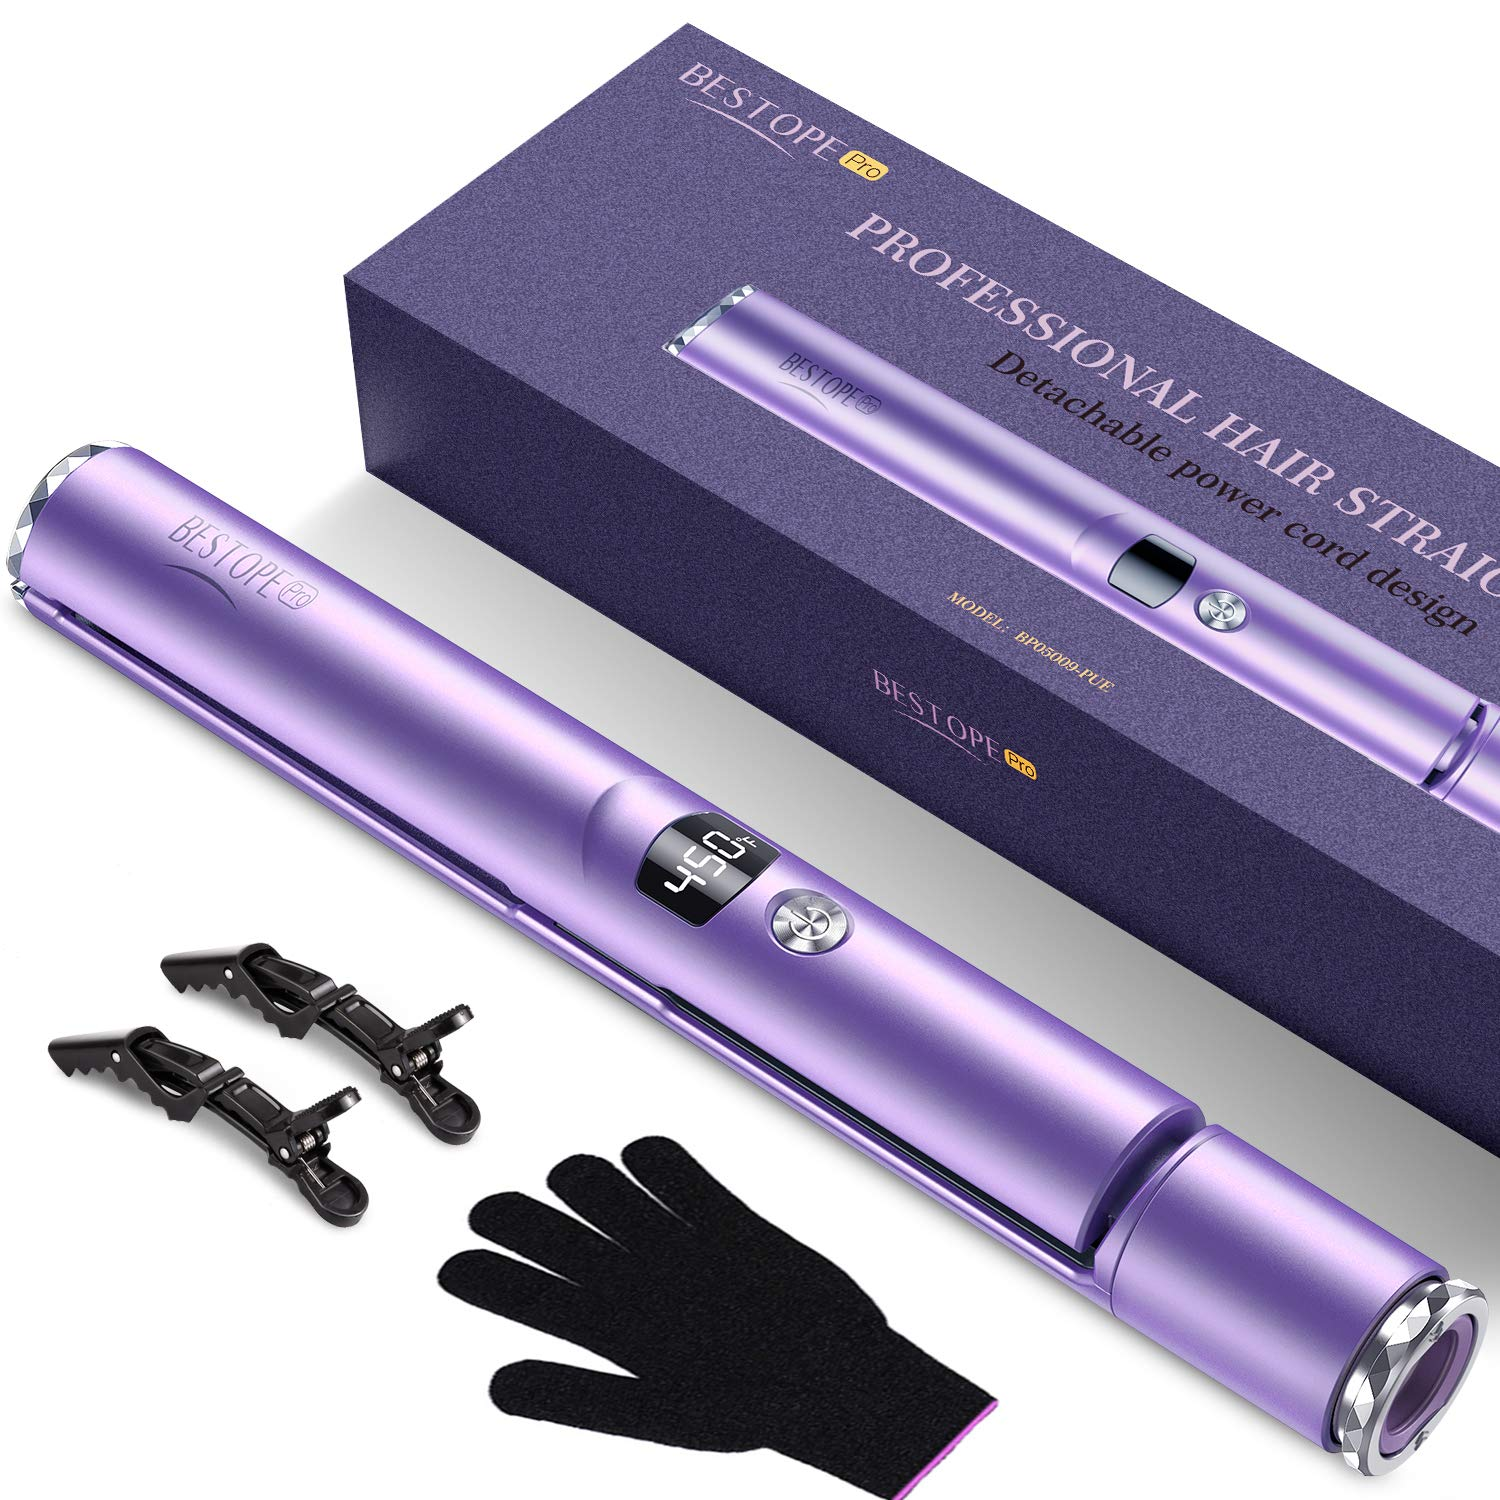 BESTOPE Hair Straightener and Ranking TOP12 Curler 2 1 for in Iron w Flat Miami Mall